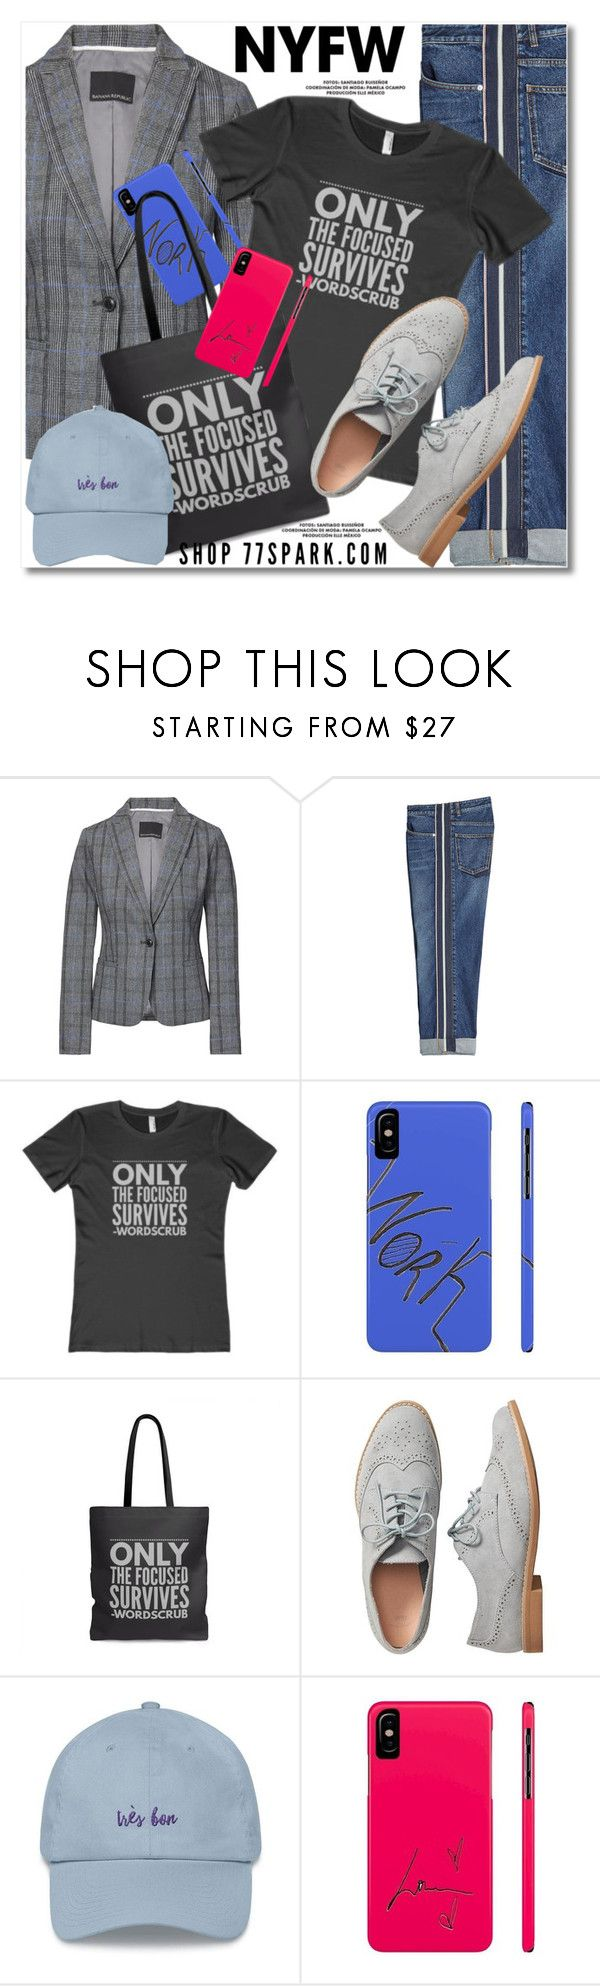 """""""NYFW Trend Spotting: Plaid - 5"""" by duma-duma ❤ liked on Polyvore featuring Banana Republic, Alexander McQueen, Gap, contestentry and NYFWPlaid"""